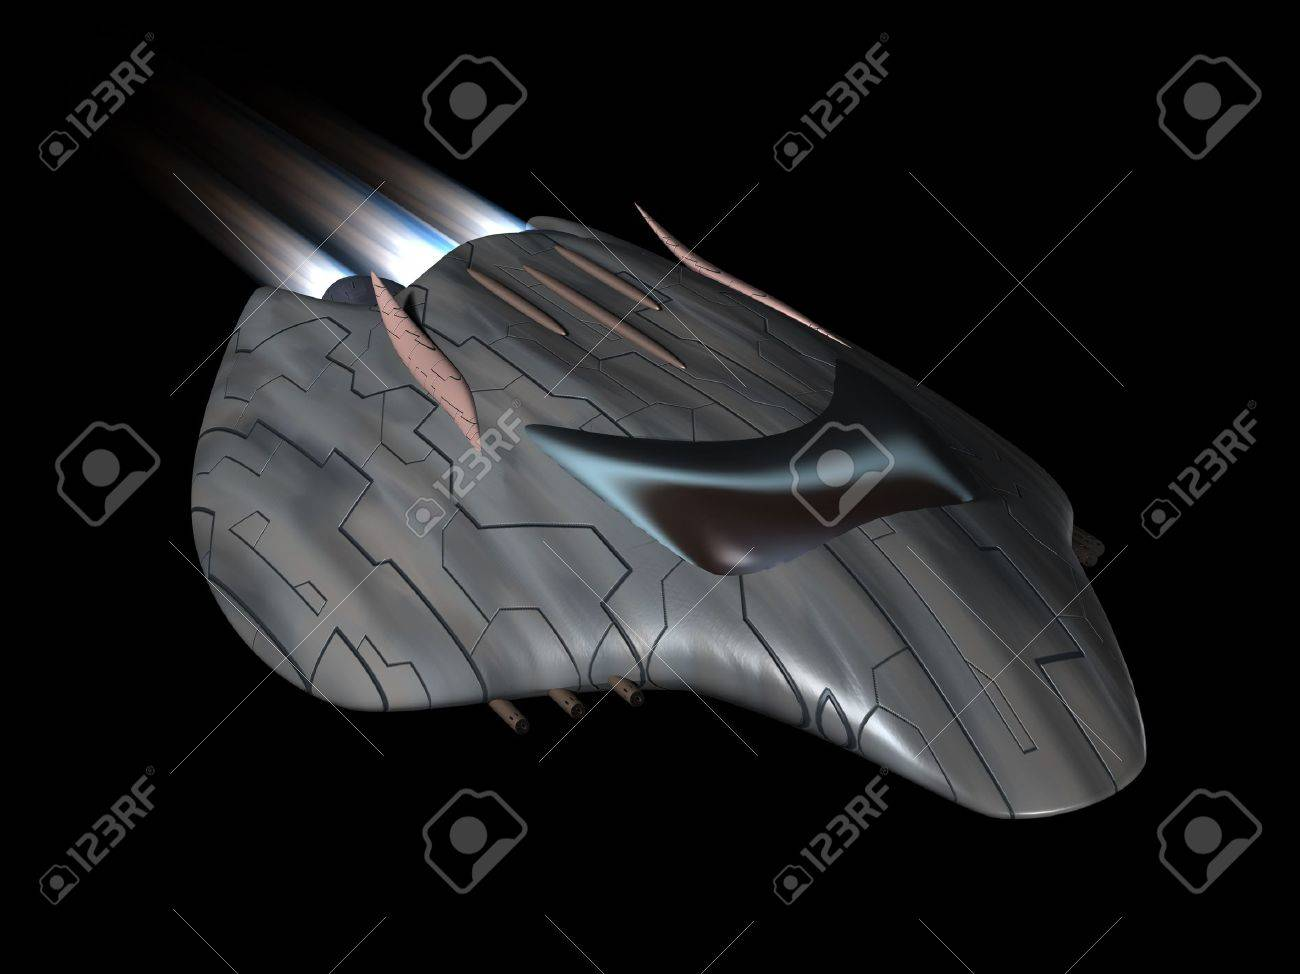 Powerful spaceship very streamlined in action - 8850873